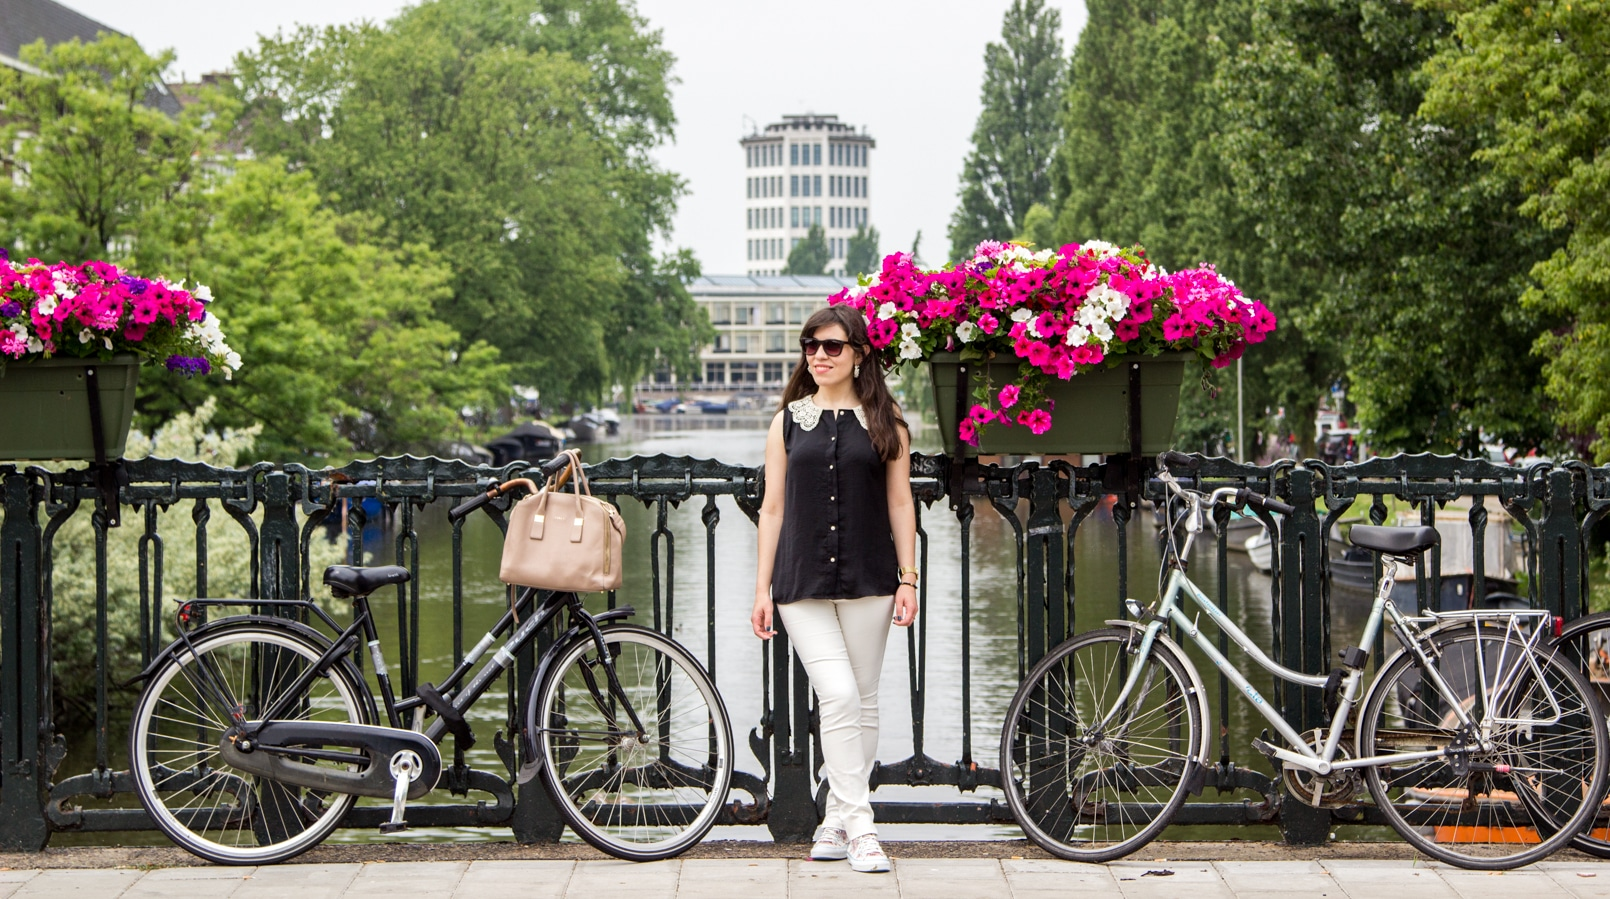 Le Fashionaire Amsterdam: What to see, eat & other cool places blogger catarine martins amsterdam guide flowers bike 9859F EN